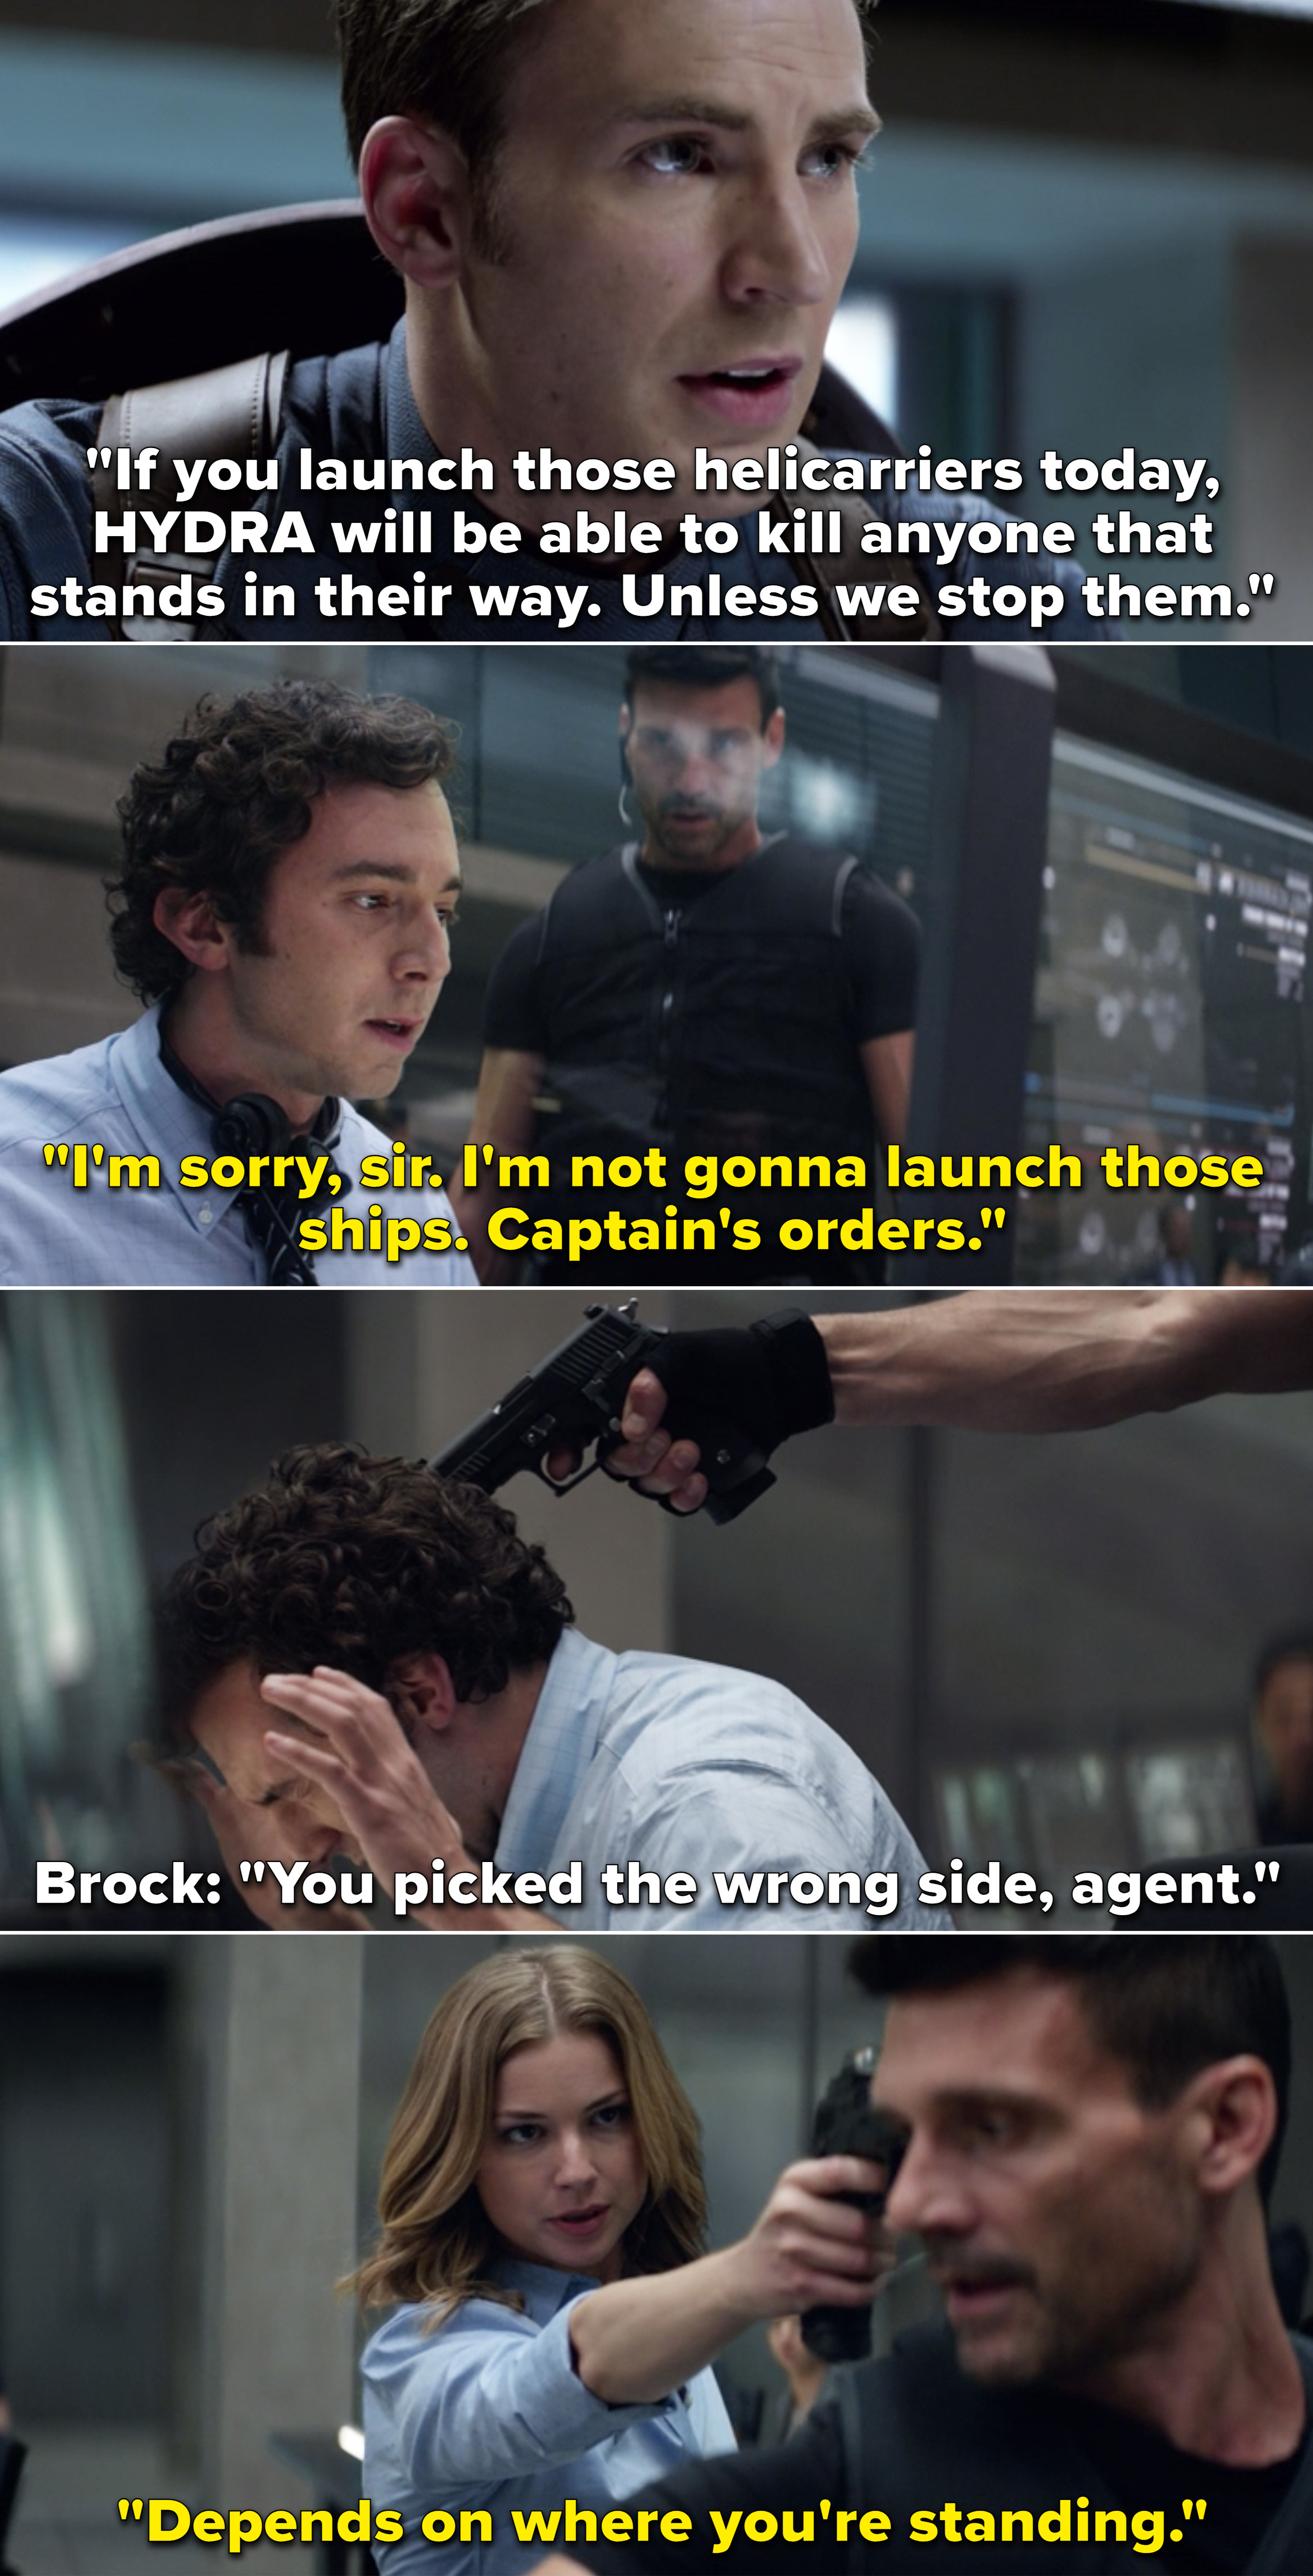 Steve telling them not to launch the helicarriers and a Brock pointing a gun to an agent's head after he refuses to